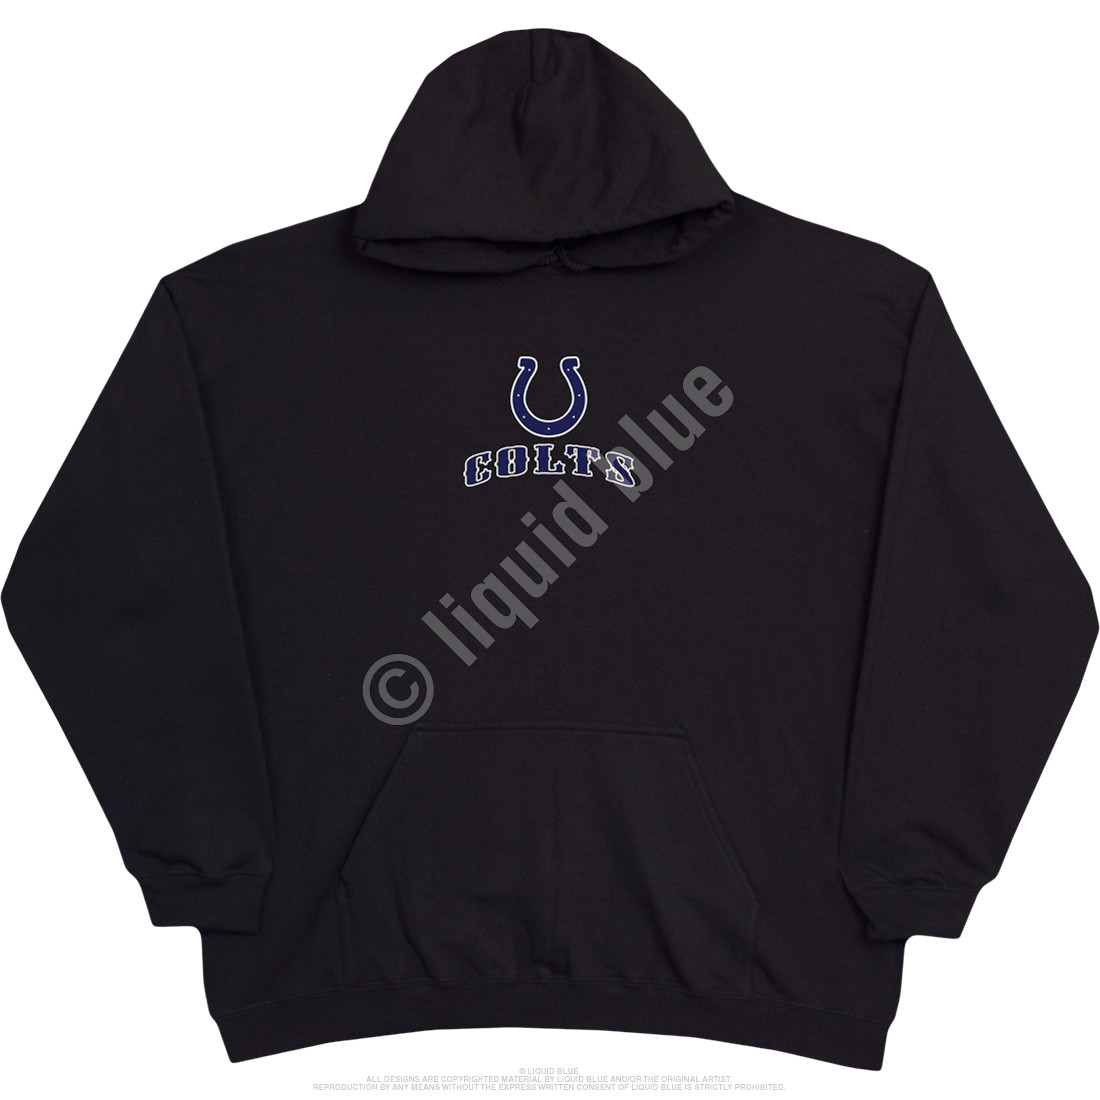 Indianapolis Colts Running Back Black Hoodie